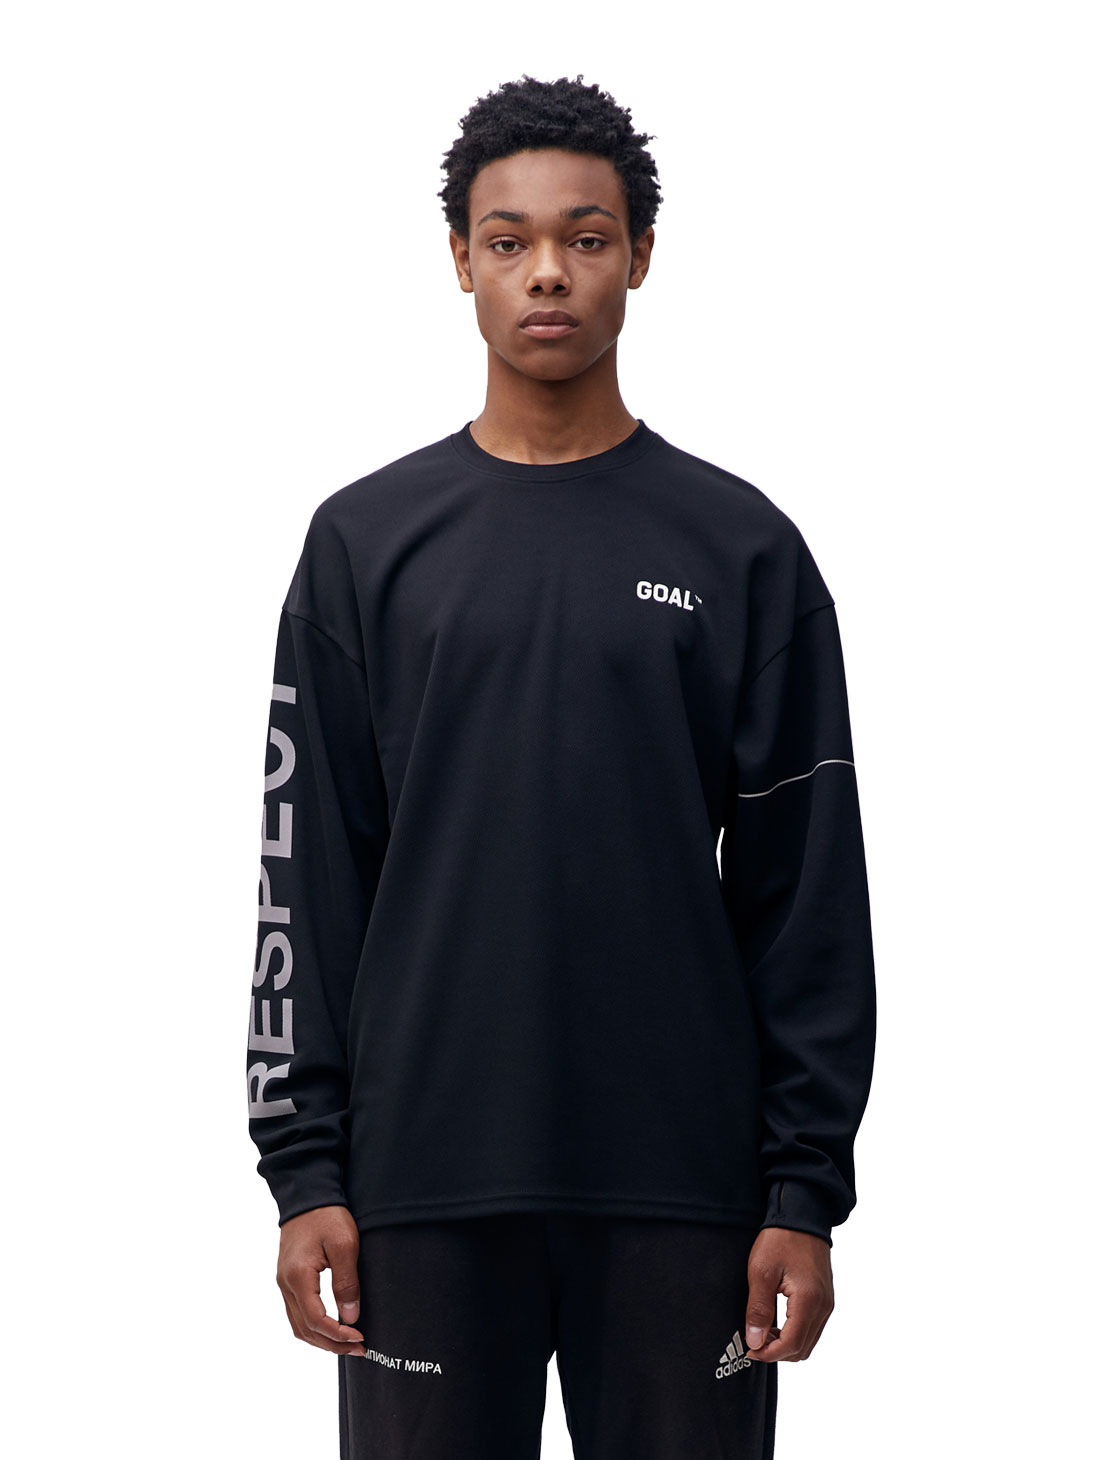 GOALSTUDIO RESPECT LONG SLEEVE TEE - BLACK